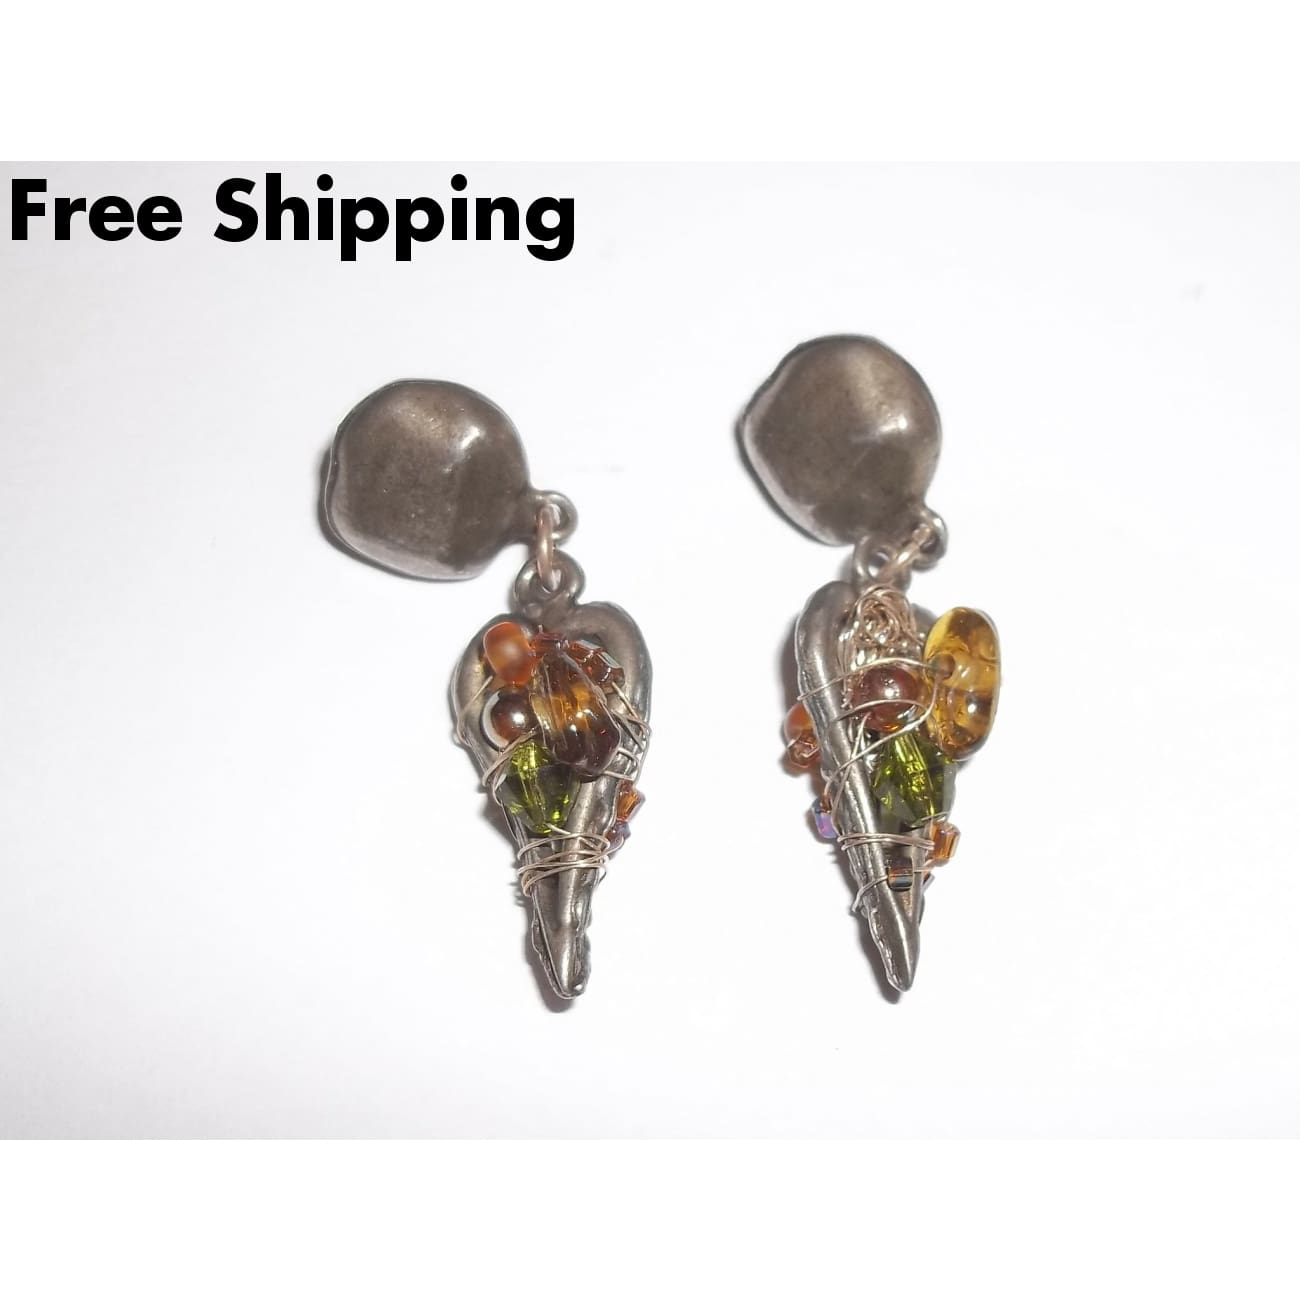 Vintage Pewter Wire Wrapped Amber Glass Beaded Goth Dangle Earrings - Vintage Handcrafted Artisan